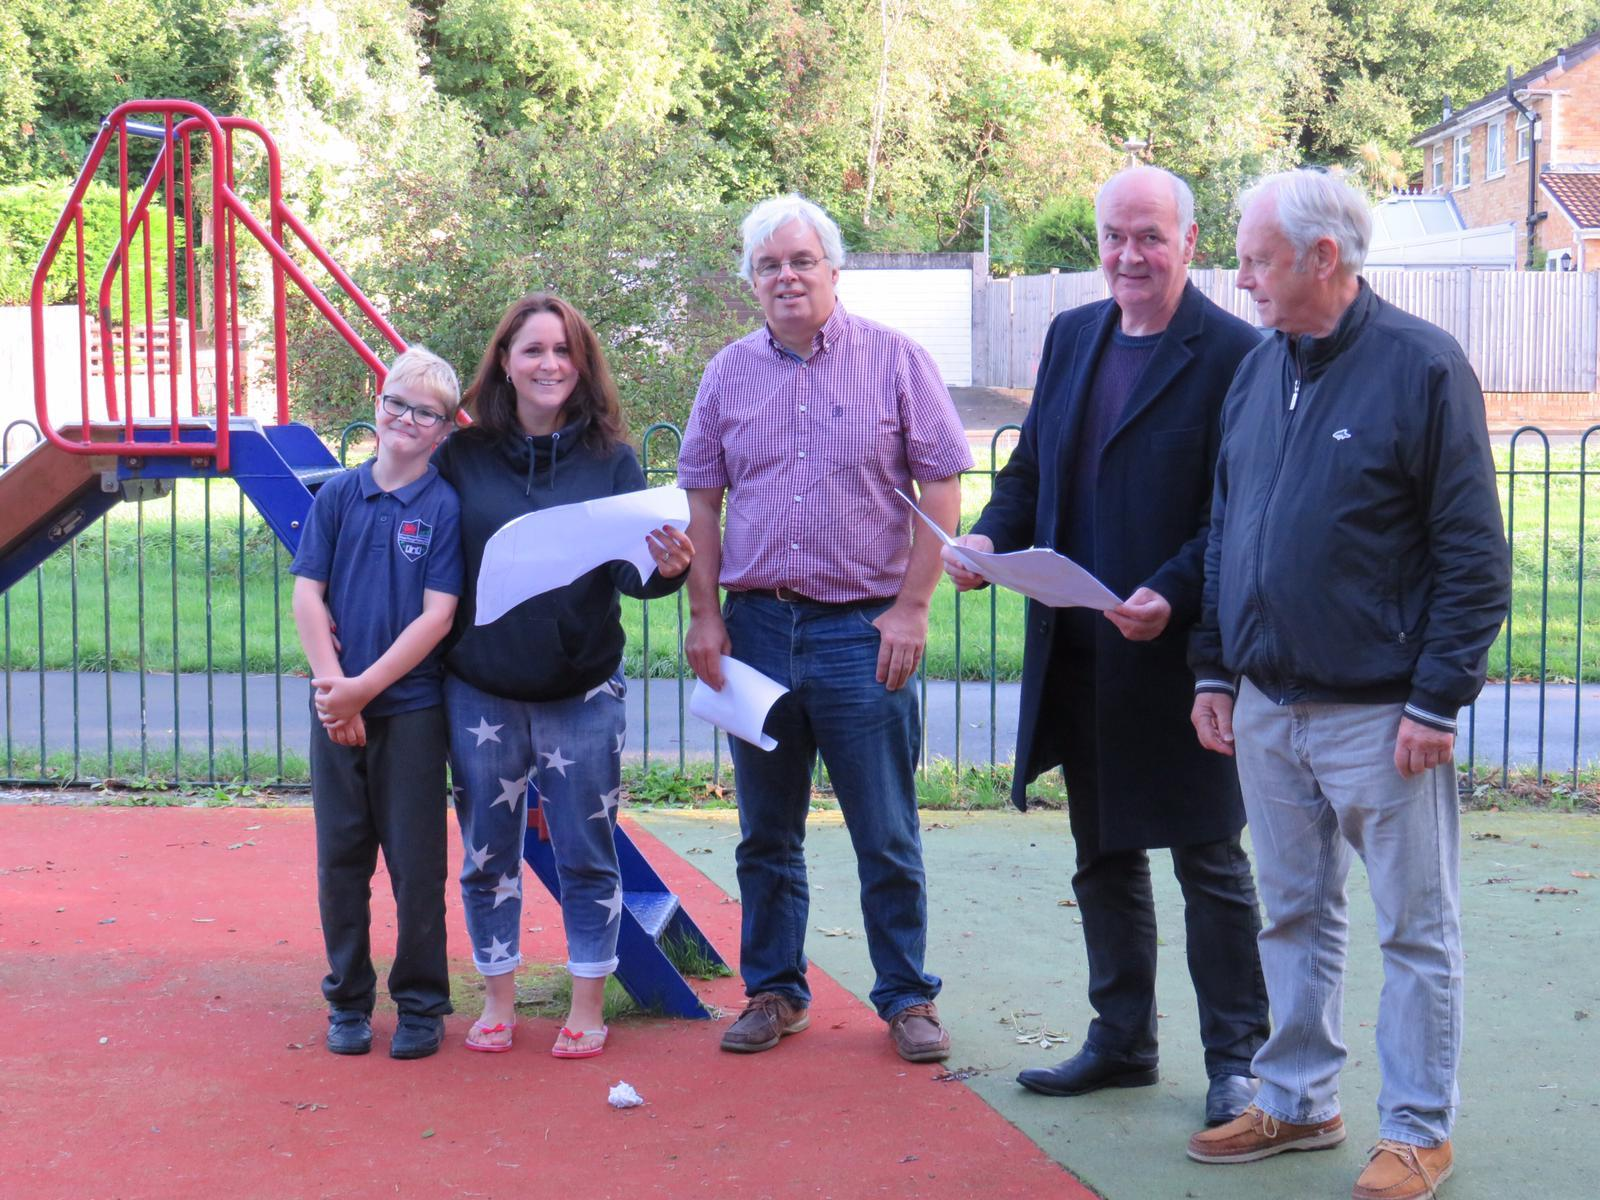 Overhaul on the way for 'dated' Murchfield playground after community campaign